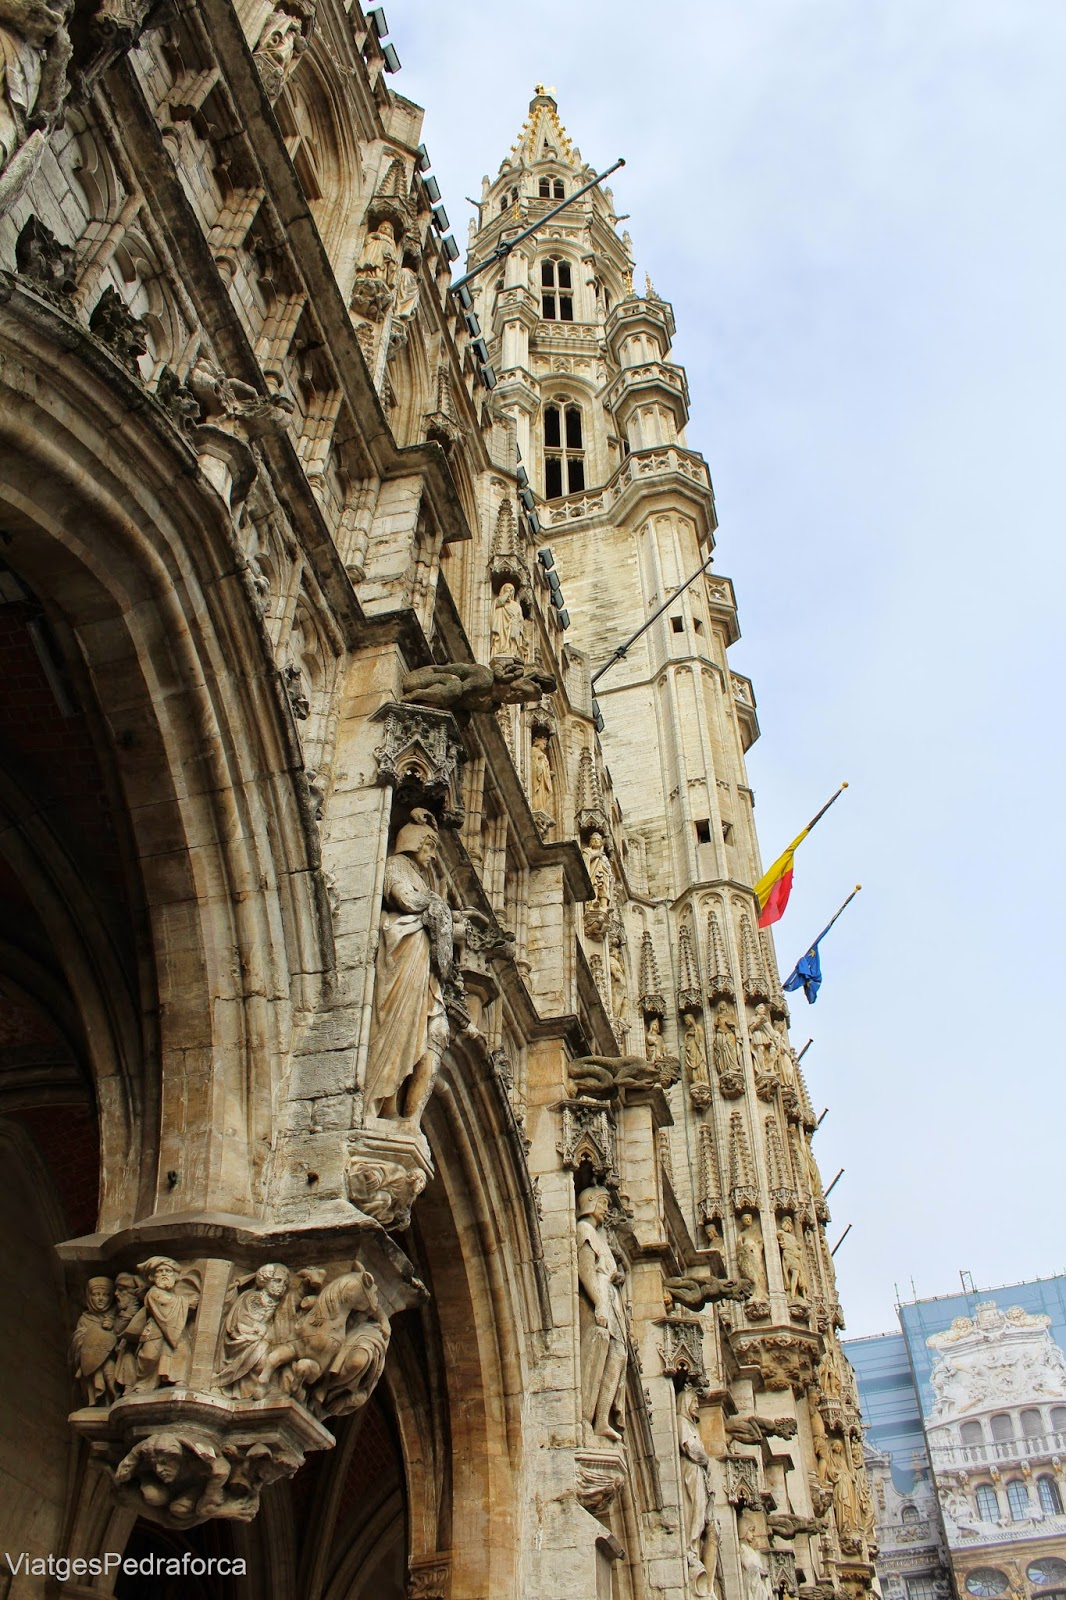 Ajuntament gotic de Brussel.les Grand Place Belgica